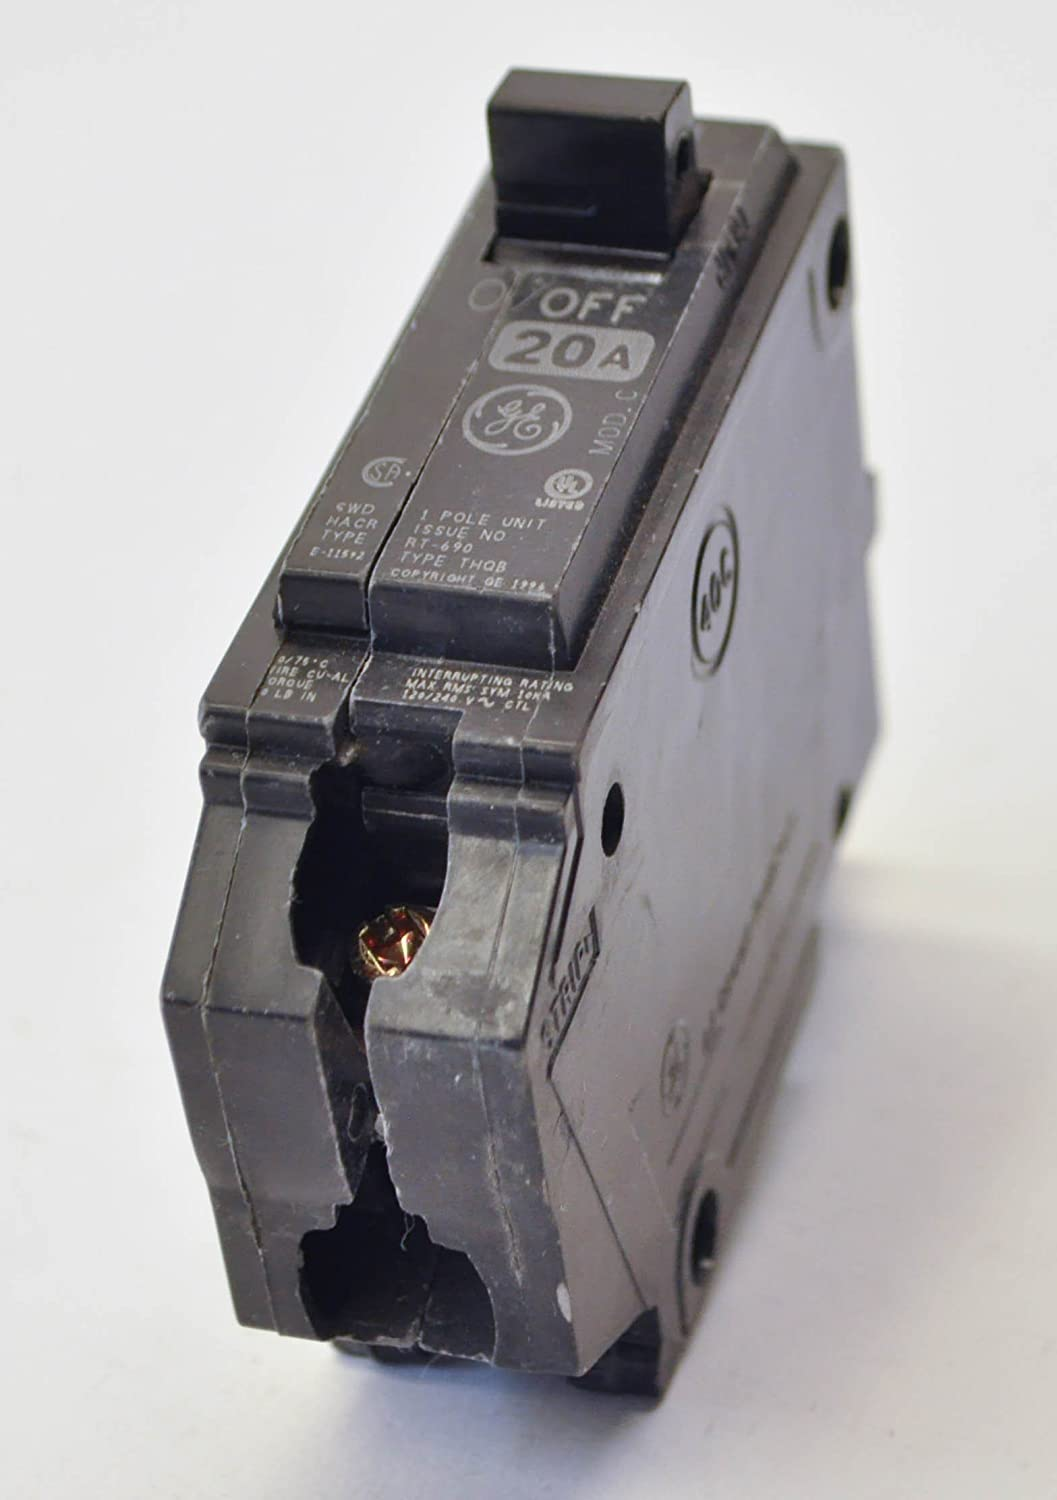 GE 20A 1POLE 120//240V BOLT-ON BREAKER THQB1120 FREE SHIPPING !!!